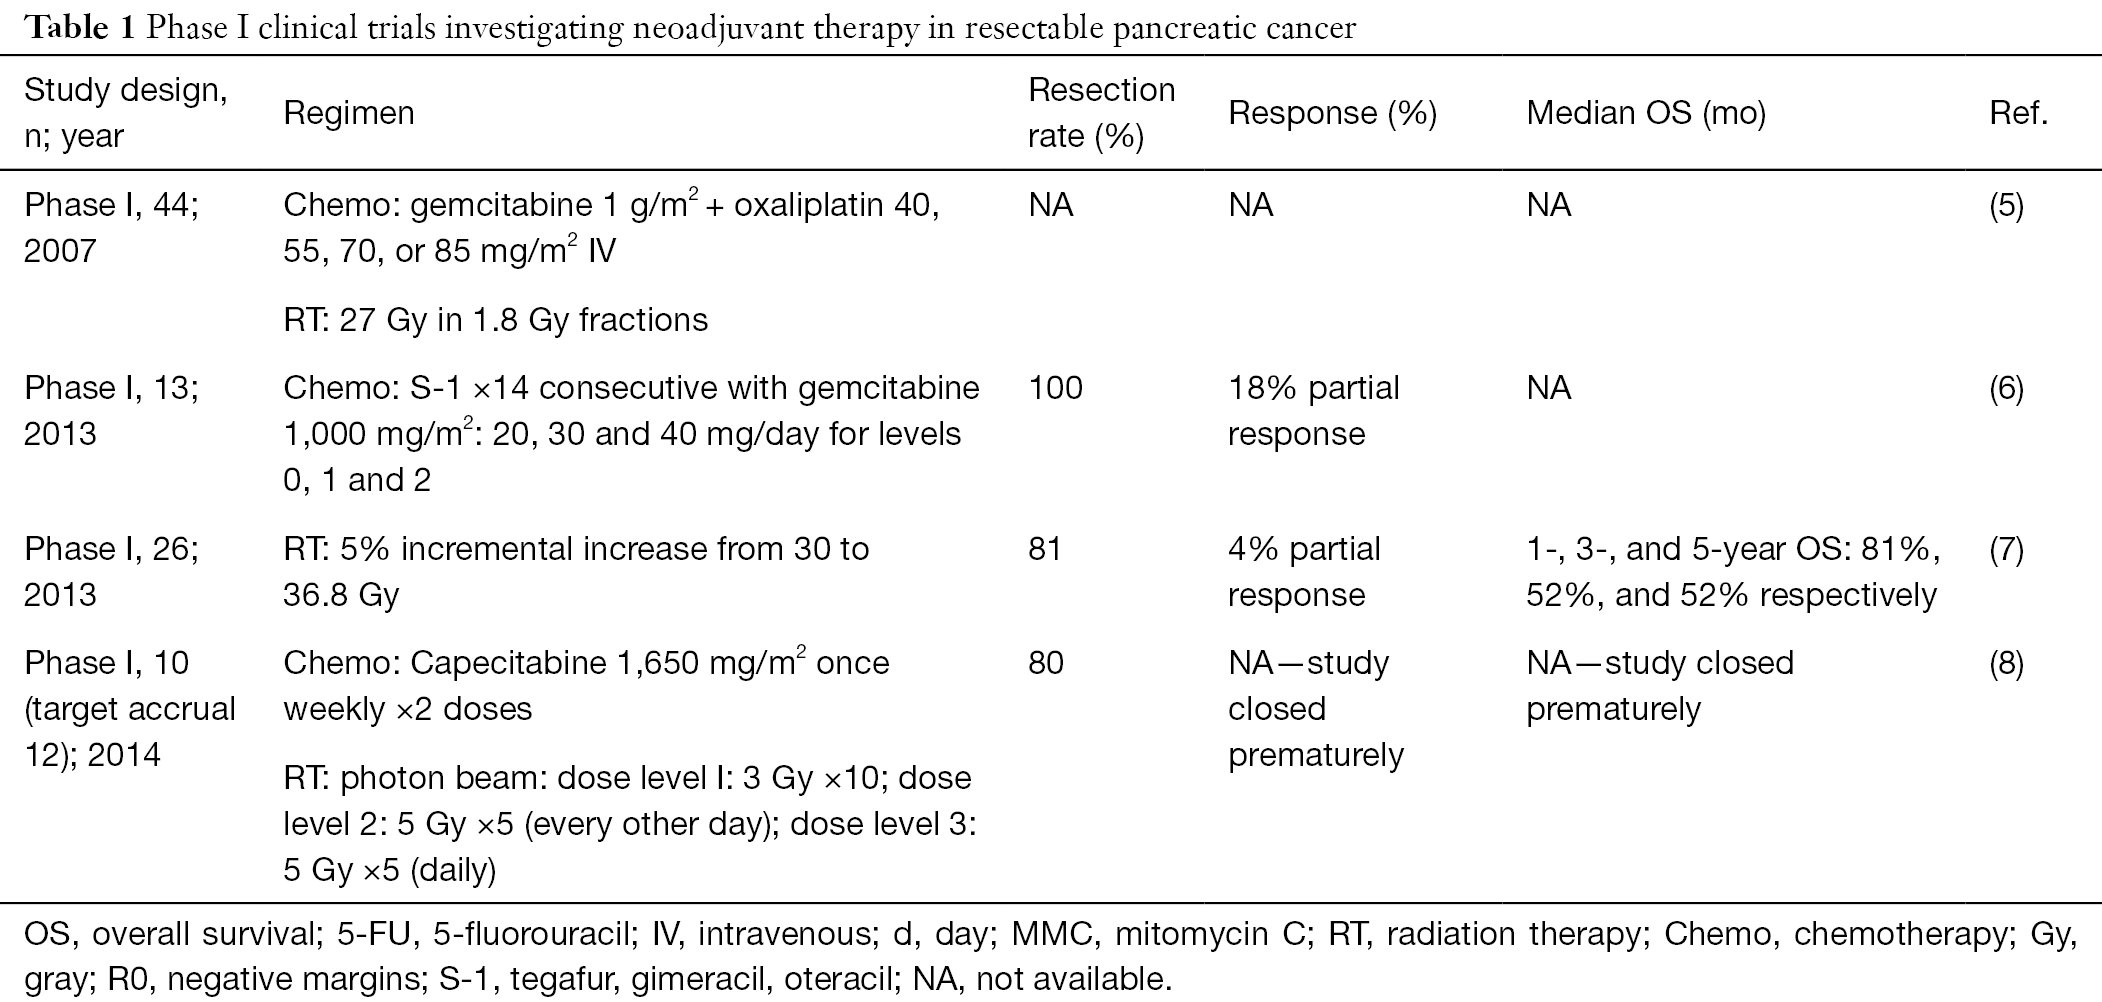 Neoadjuvant therapy in upfront resectable pancreatic cancer: current